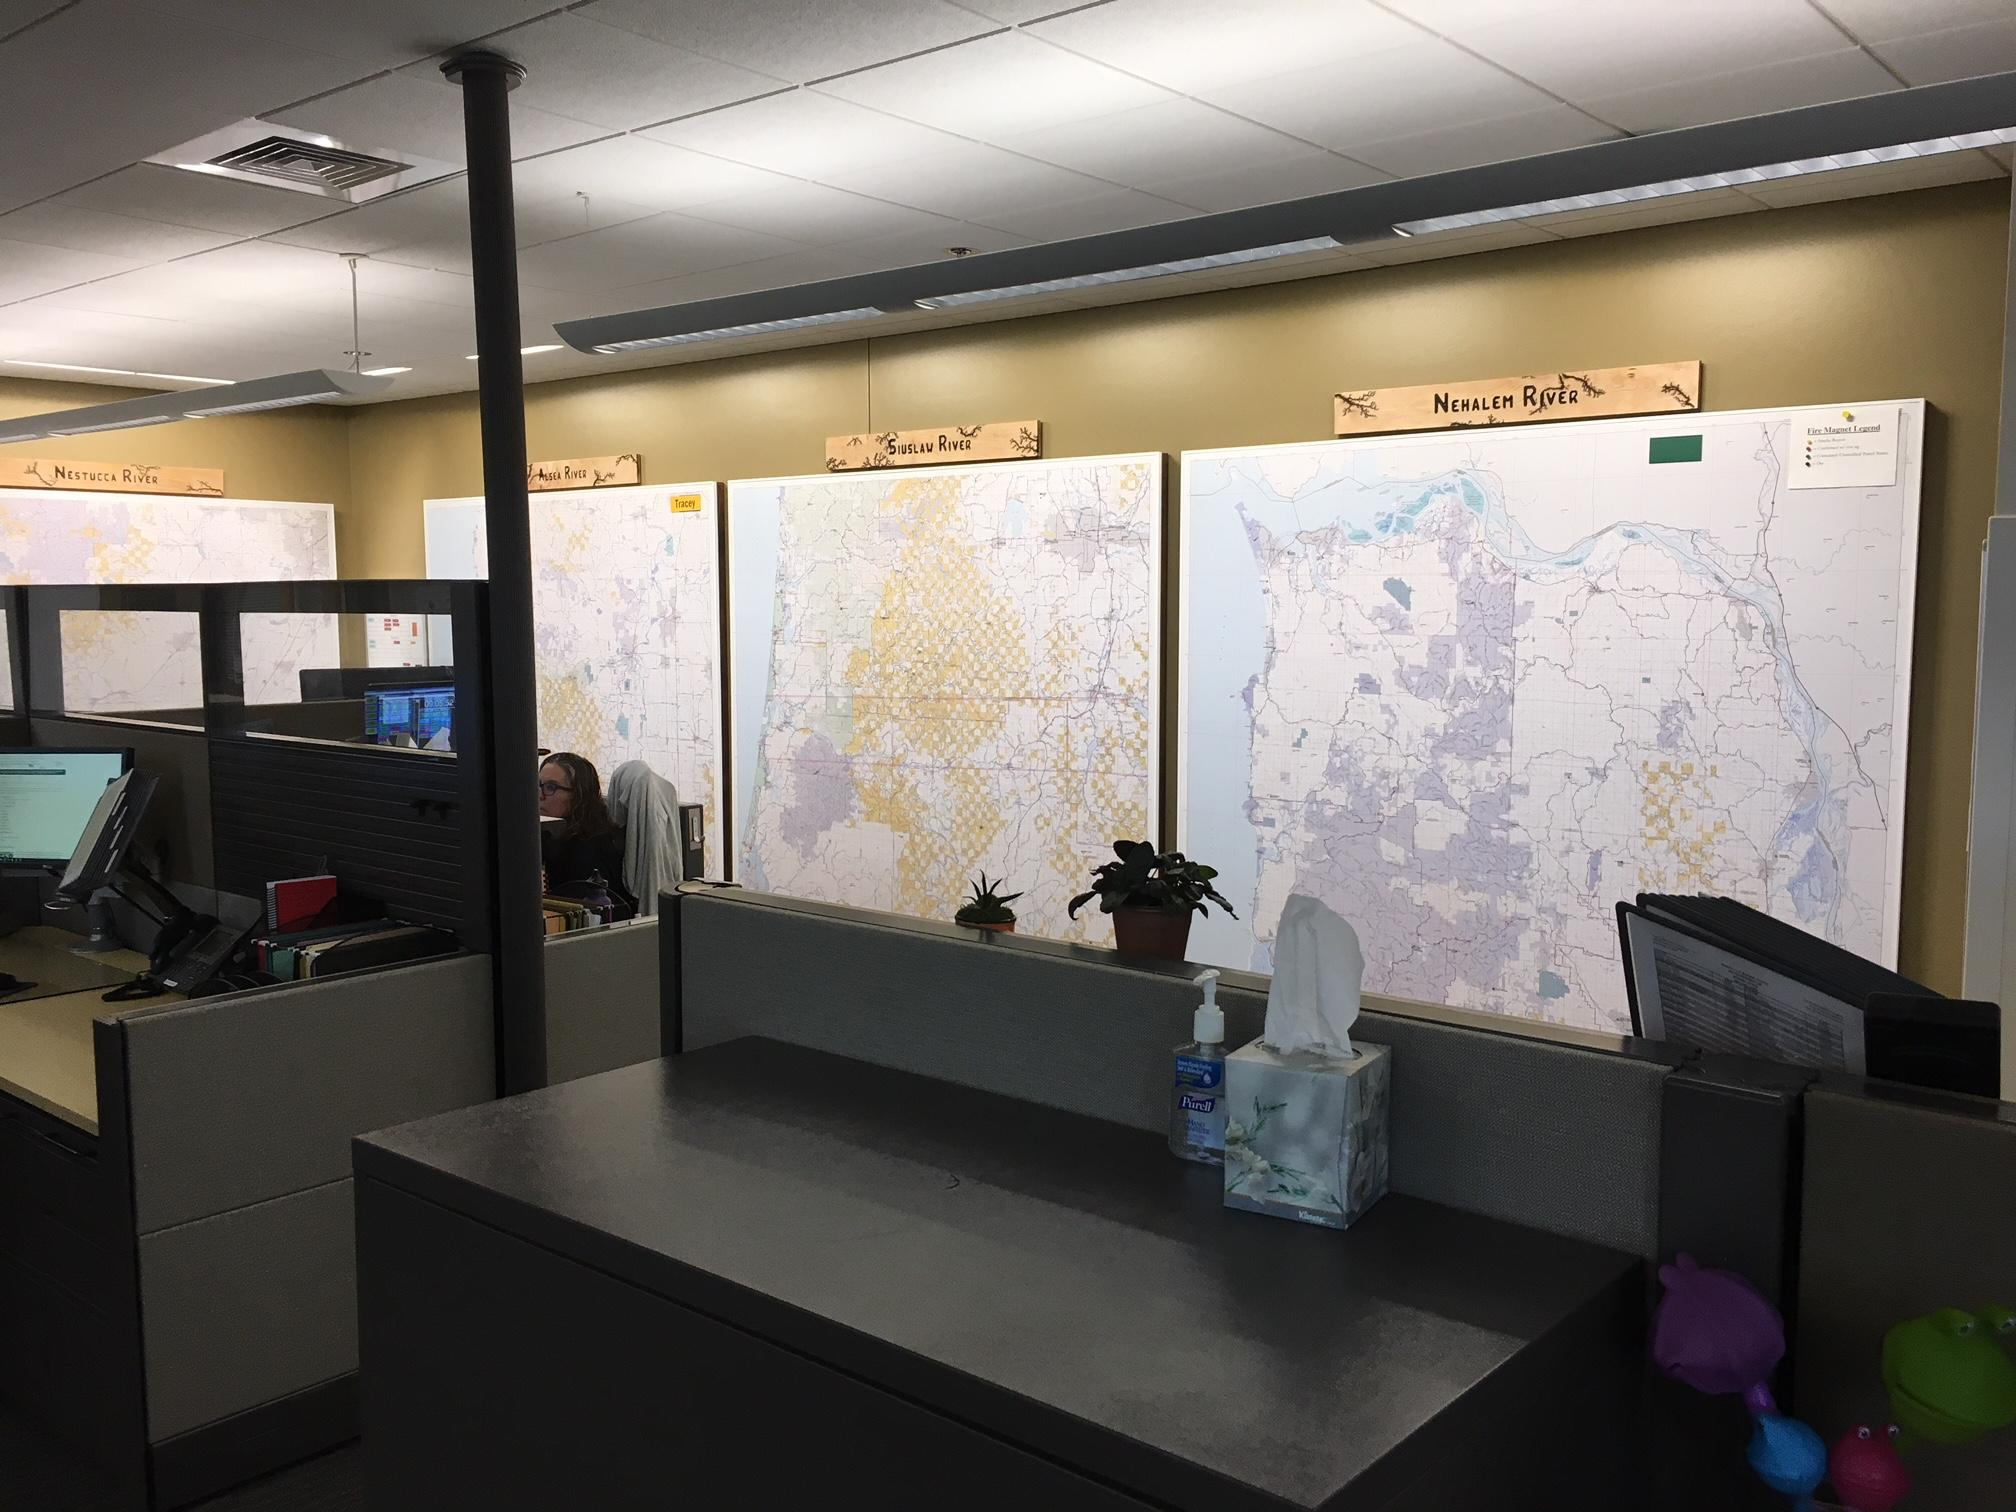 <p>Wildland firefighters anticipate &quot;above normal&quot; fire potential for parts of Oregon in July and August, according to the National Interagency Fire Center. The Forest Service and Bureau of Land Management have invested $750,000 in a new interagency communications center to help coordinate their response. (SBG)</p>